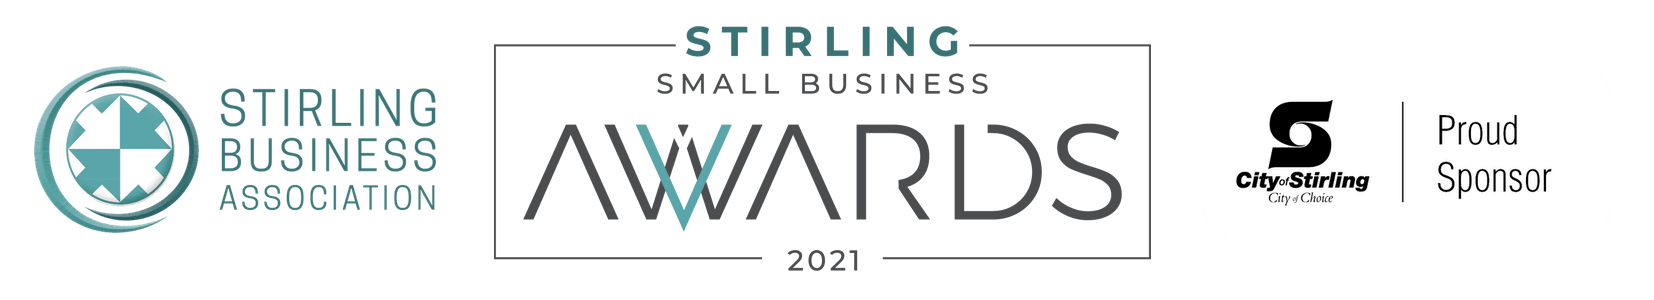 Stirling Small Business Awards 2021